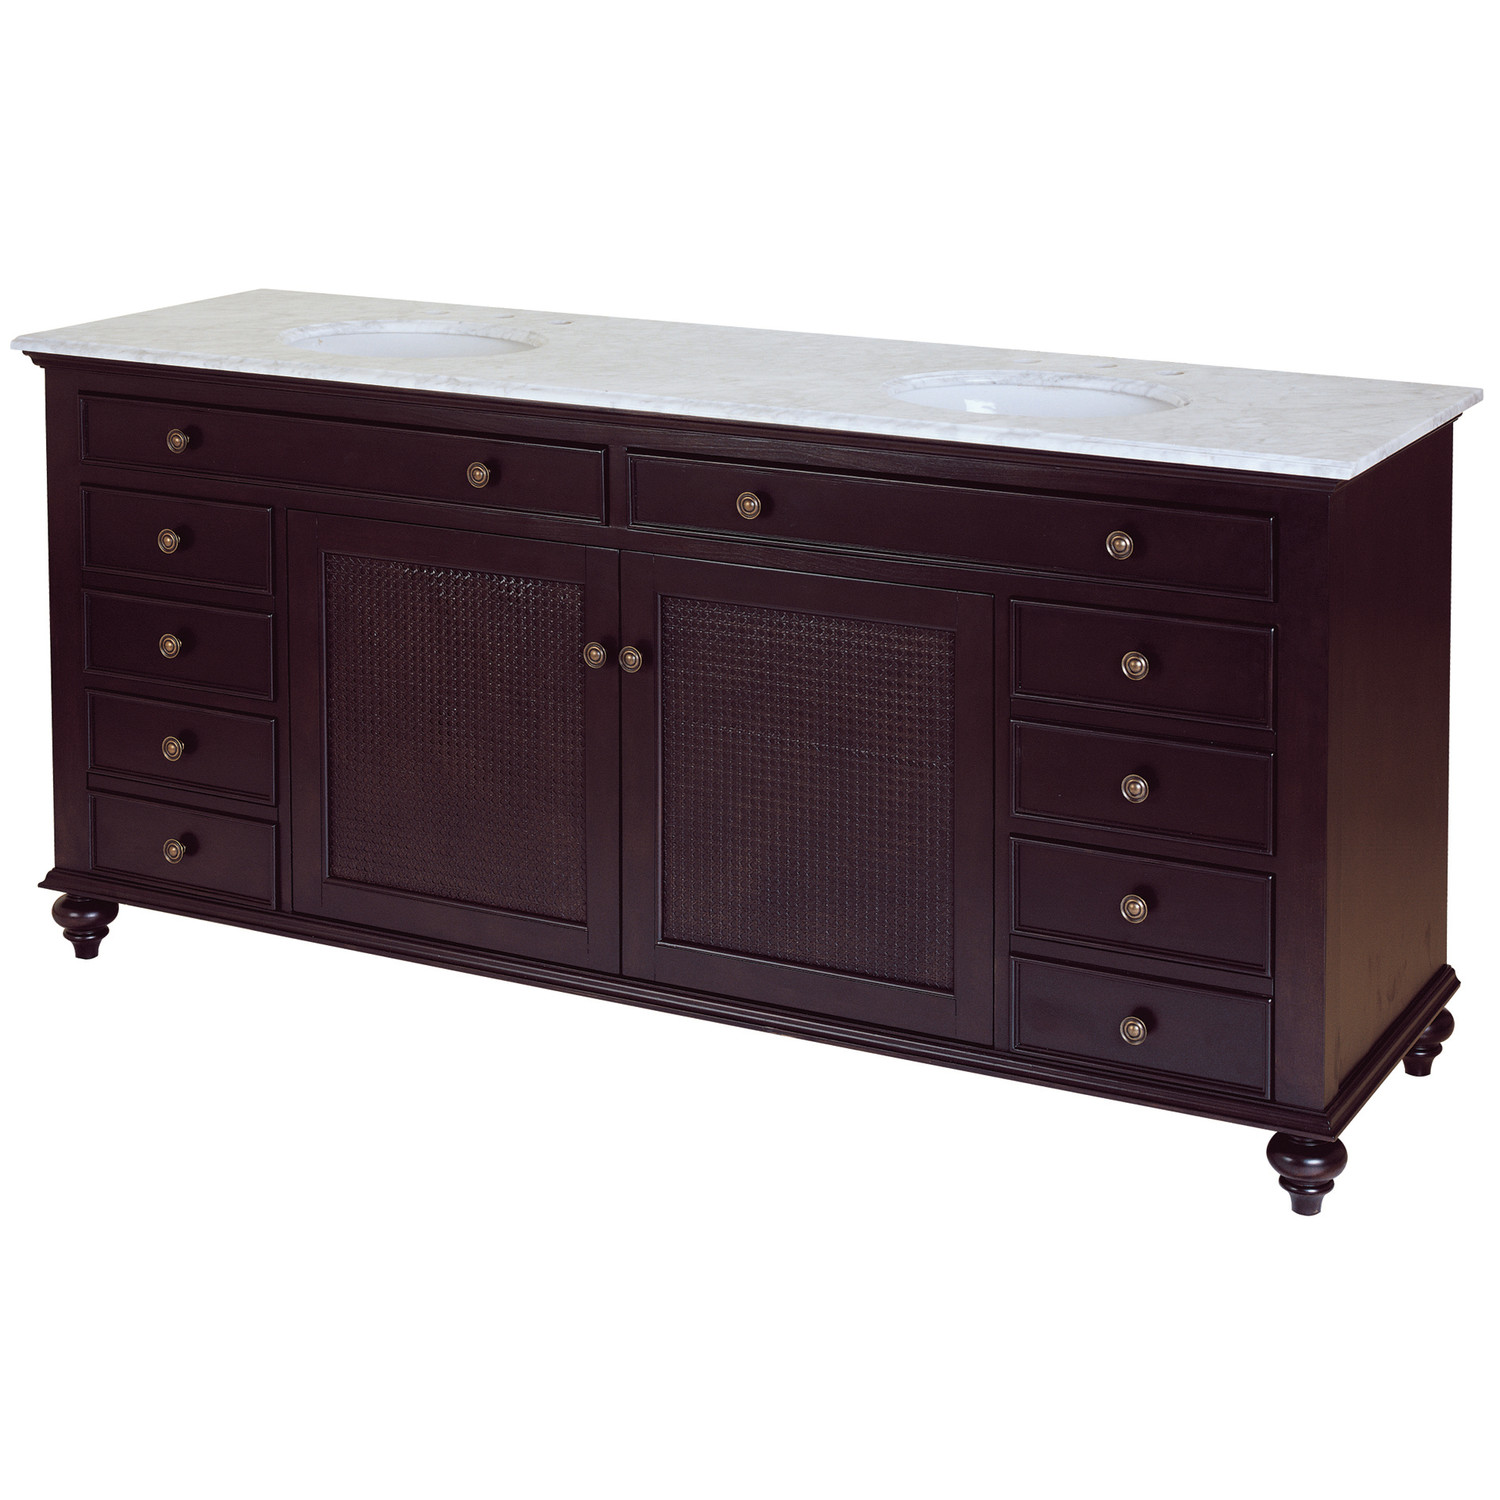 Pegasus Bathroom Vanity Tops With Wooden Drawers And Cabinet